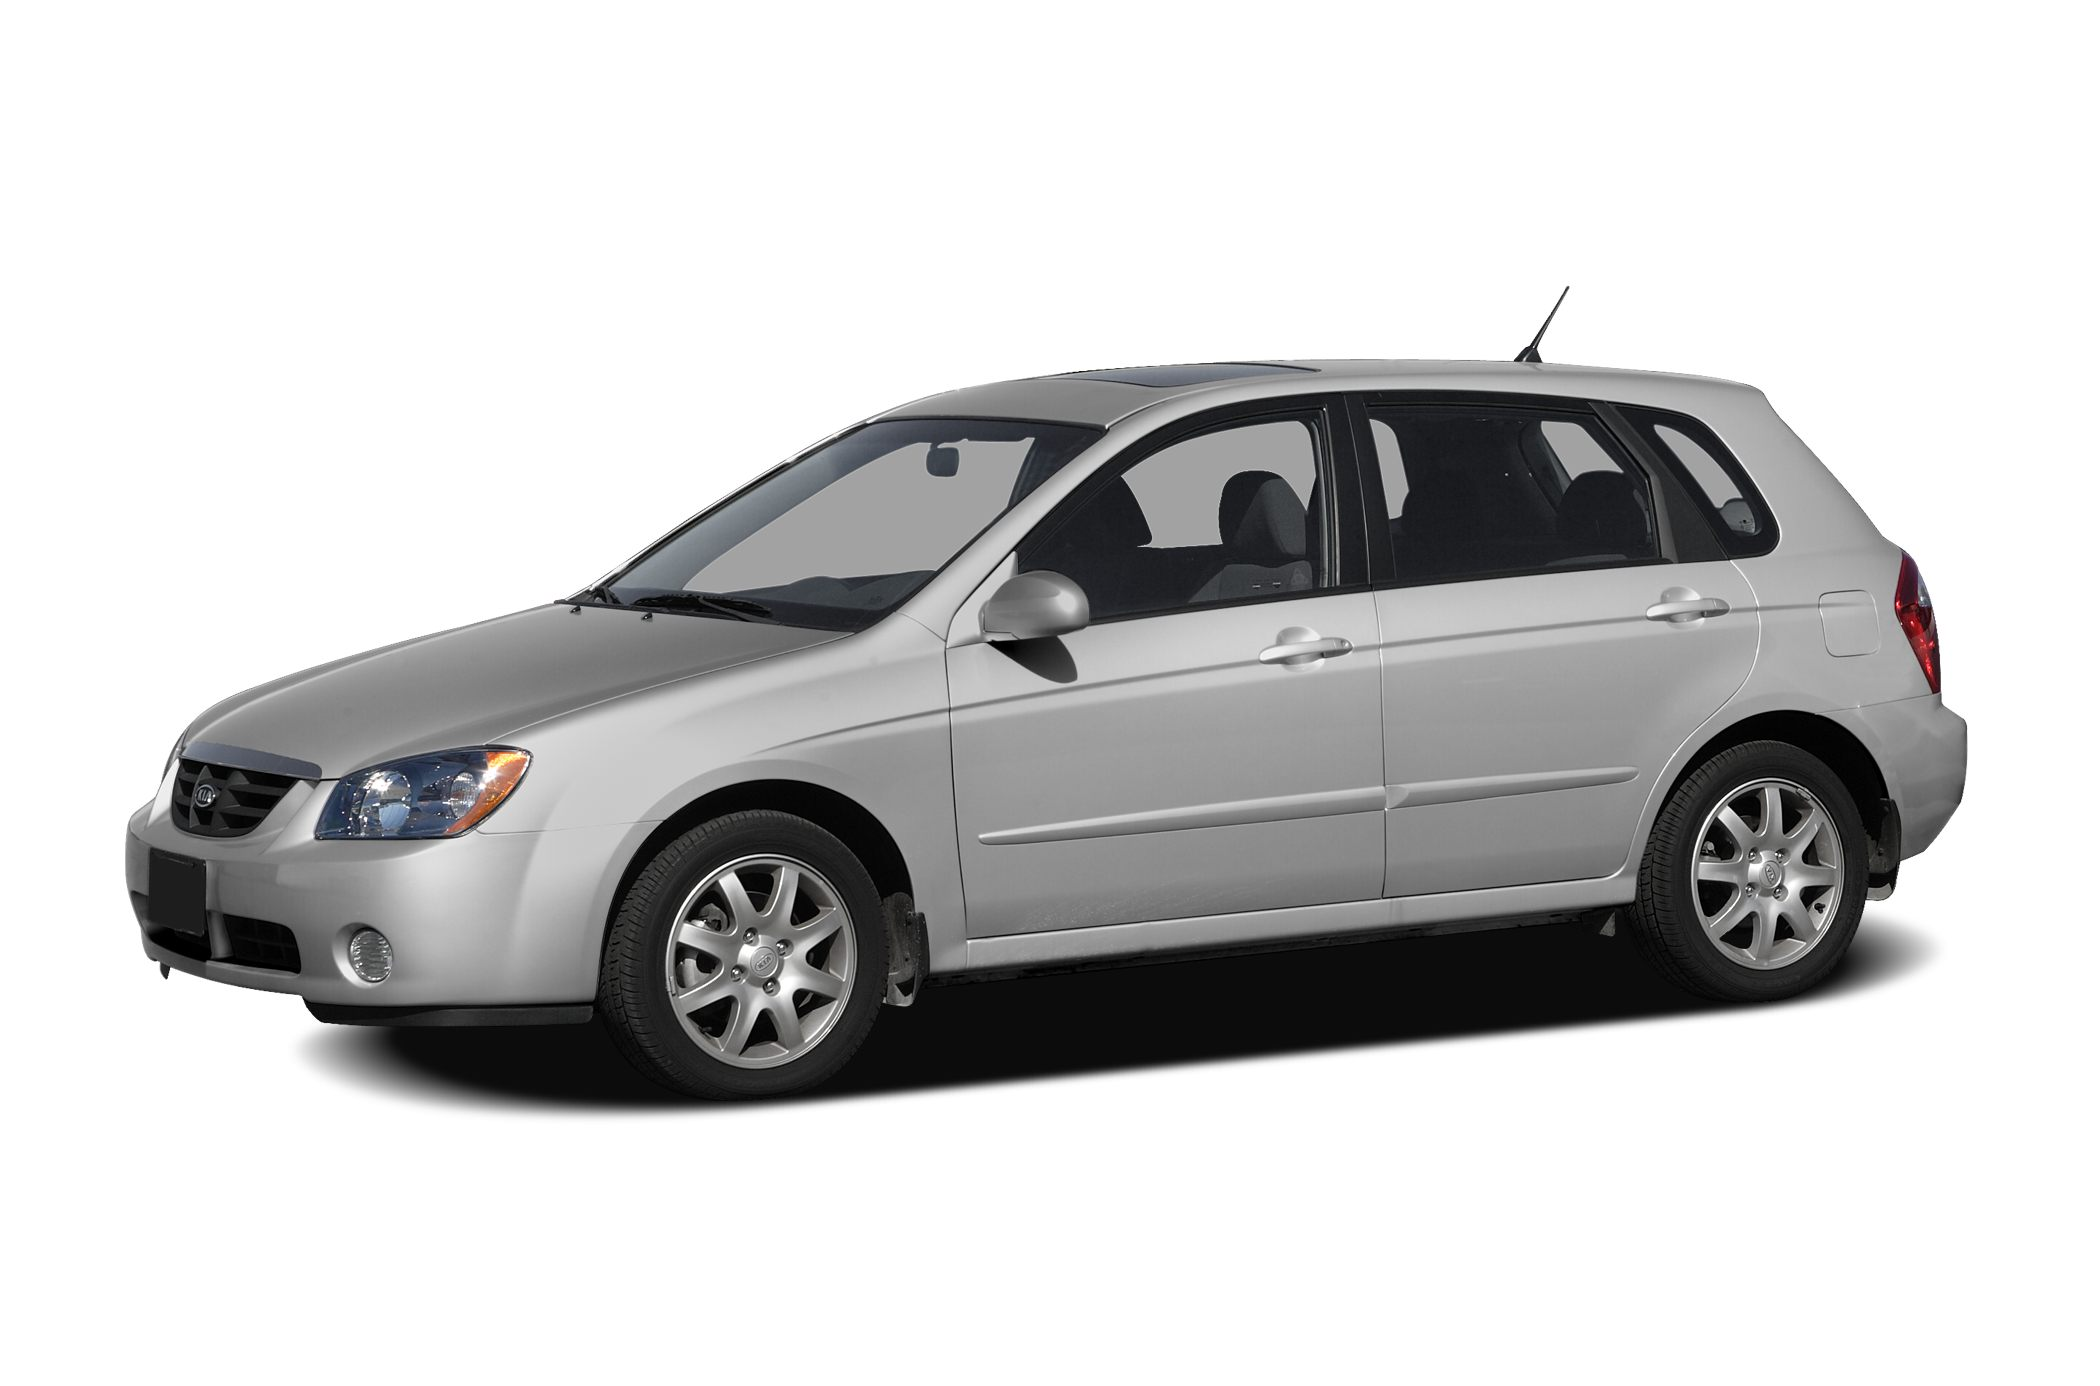 2007 Kia Spectra5